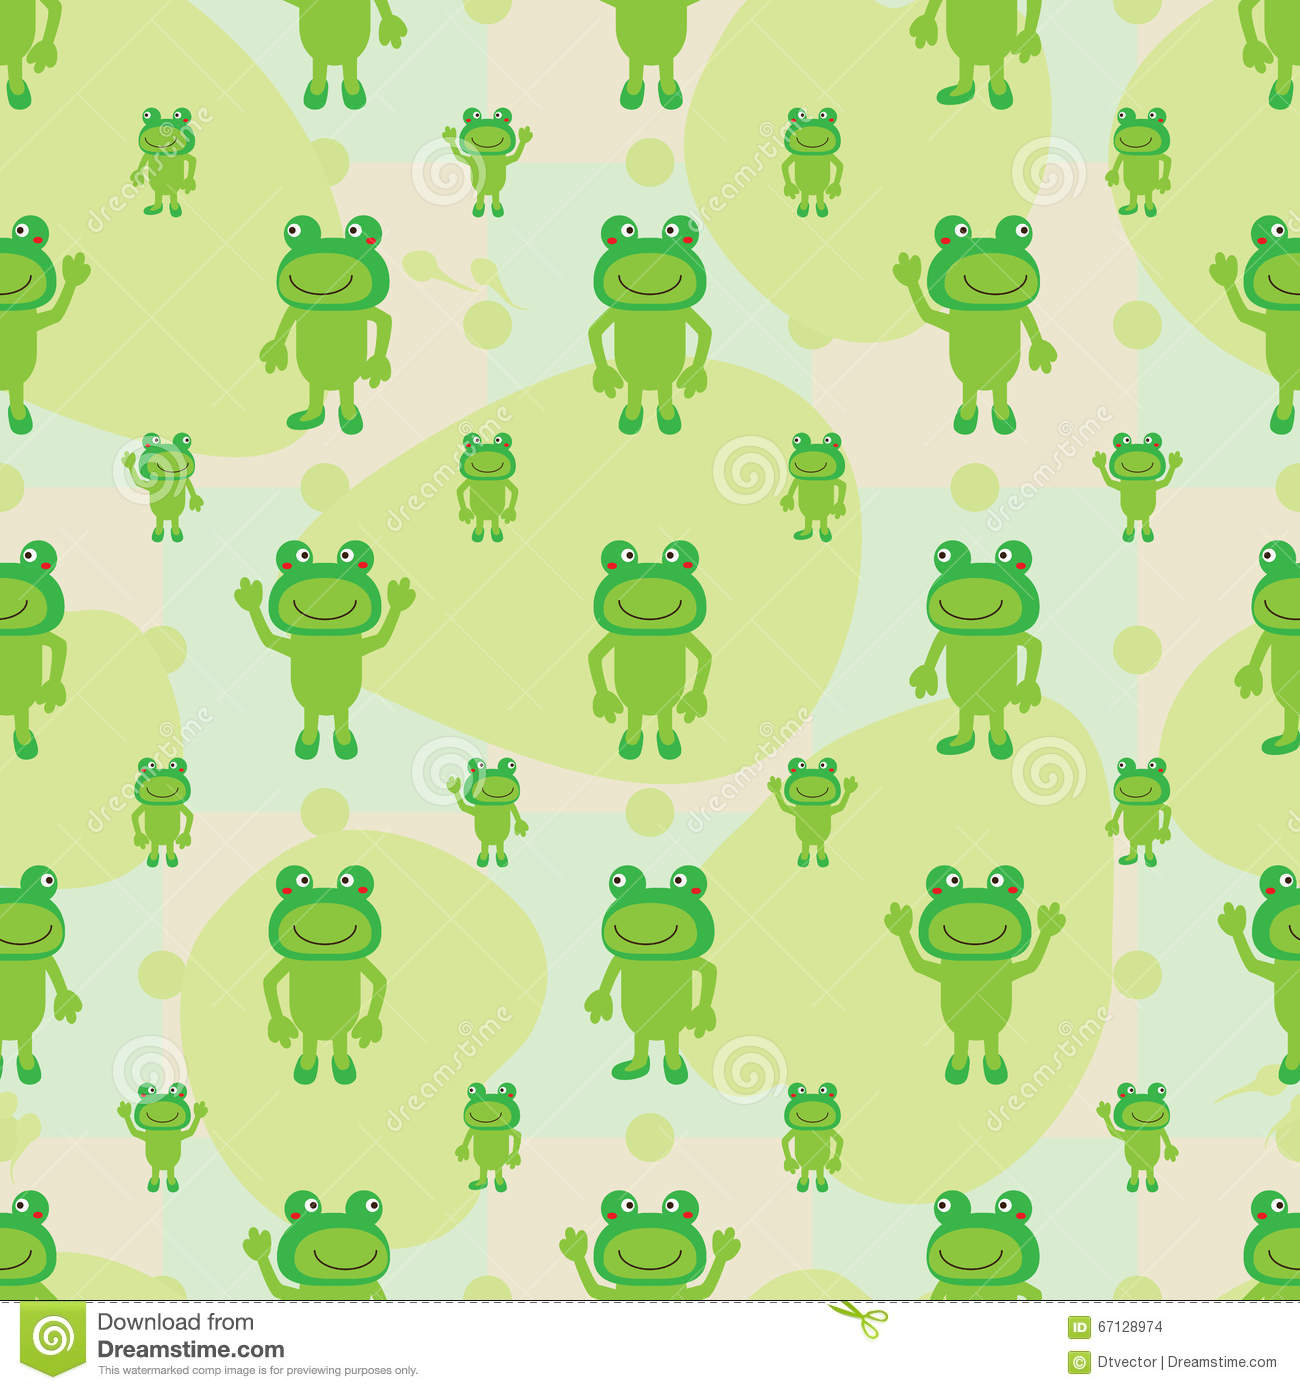 Cartoon frog symmetry leaves seamless pattern stock vector - Frog cartoon wallpaper ...